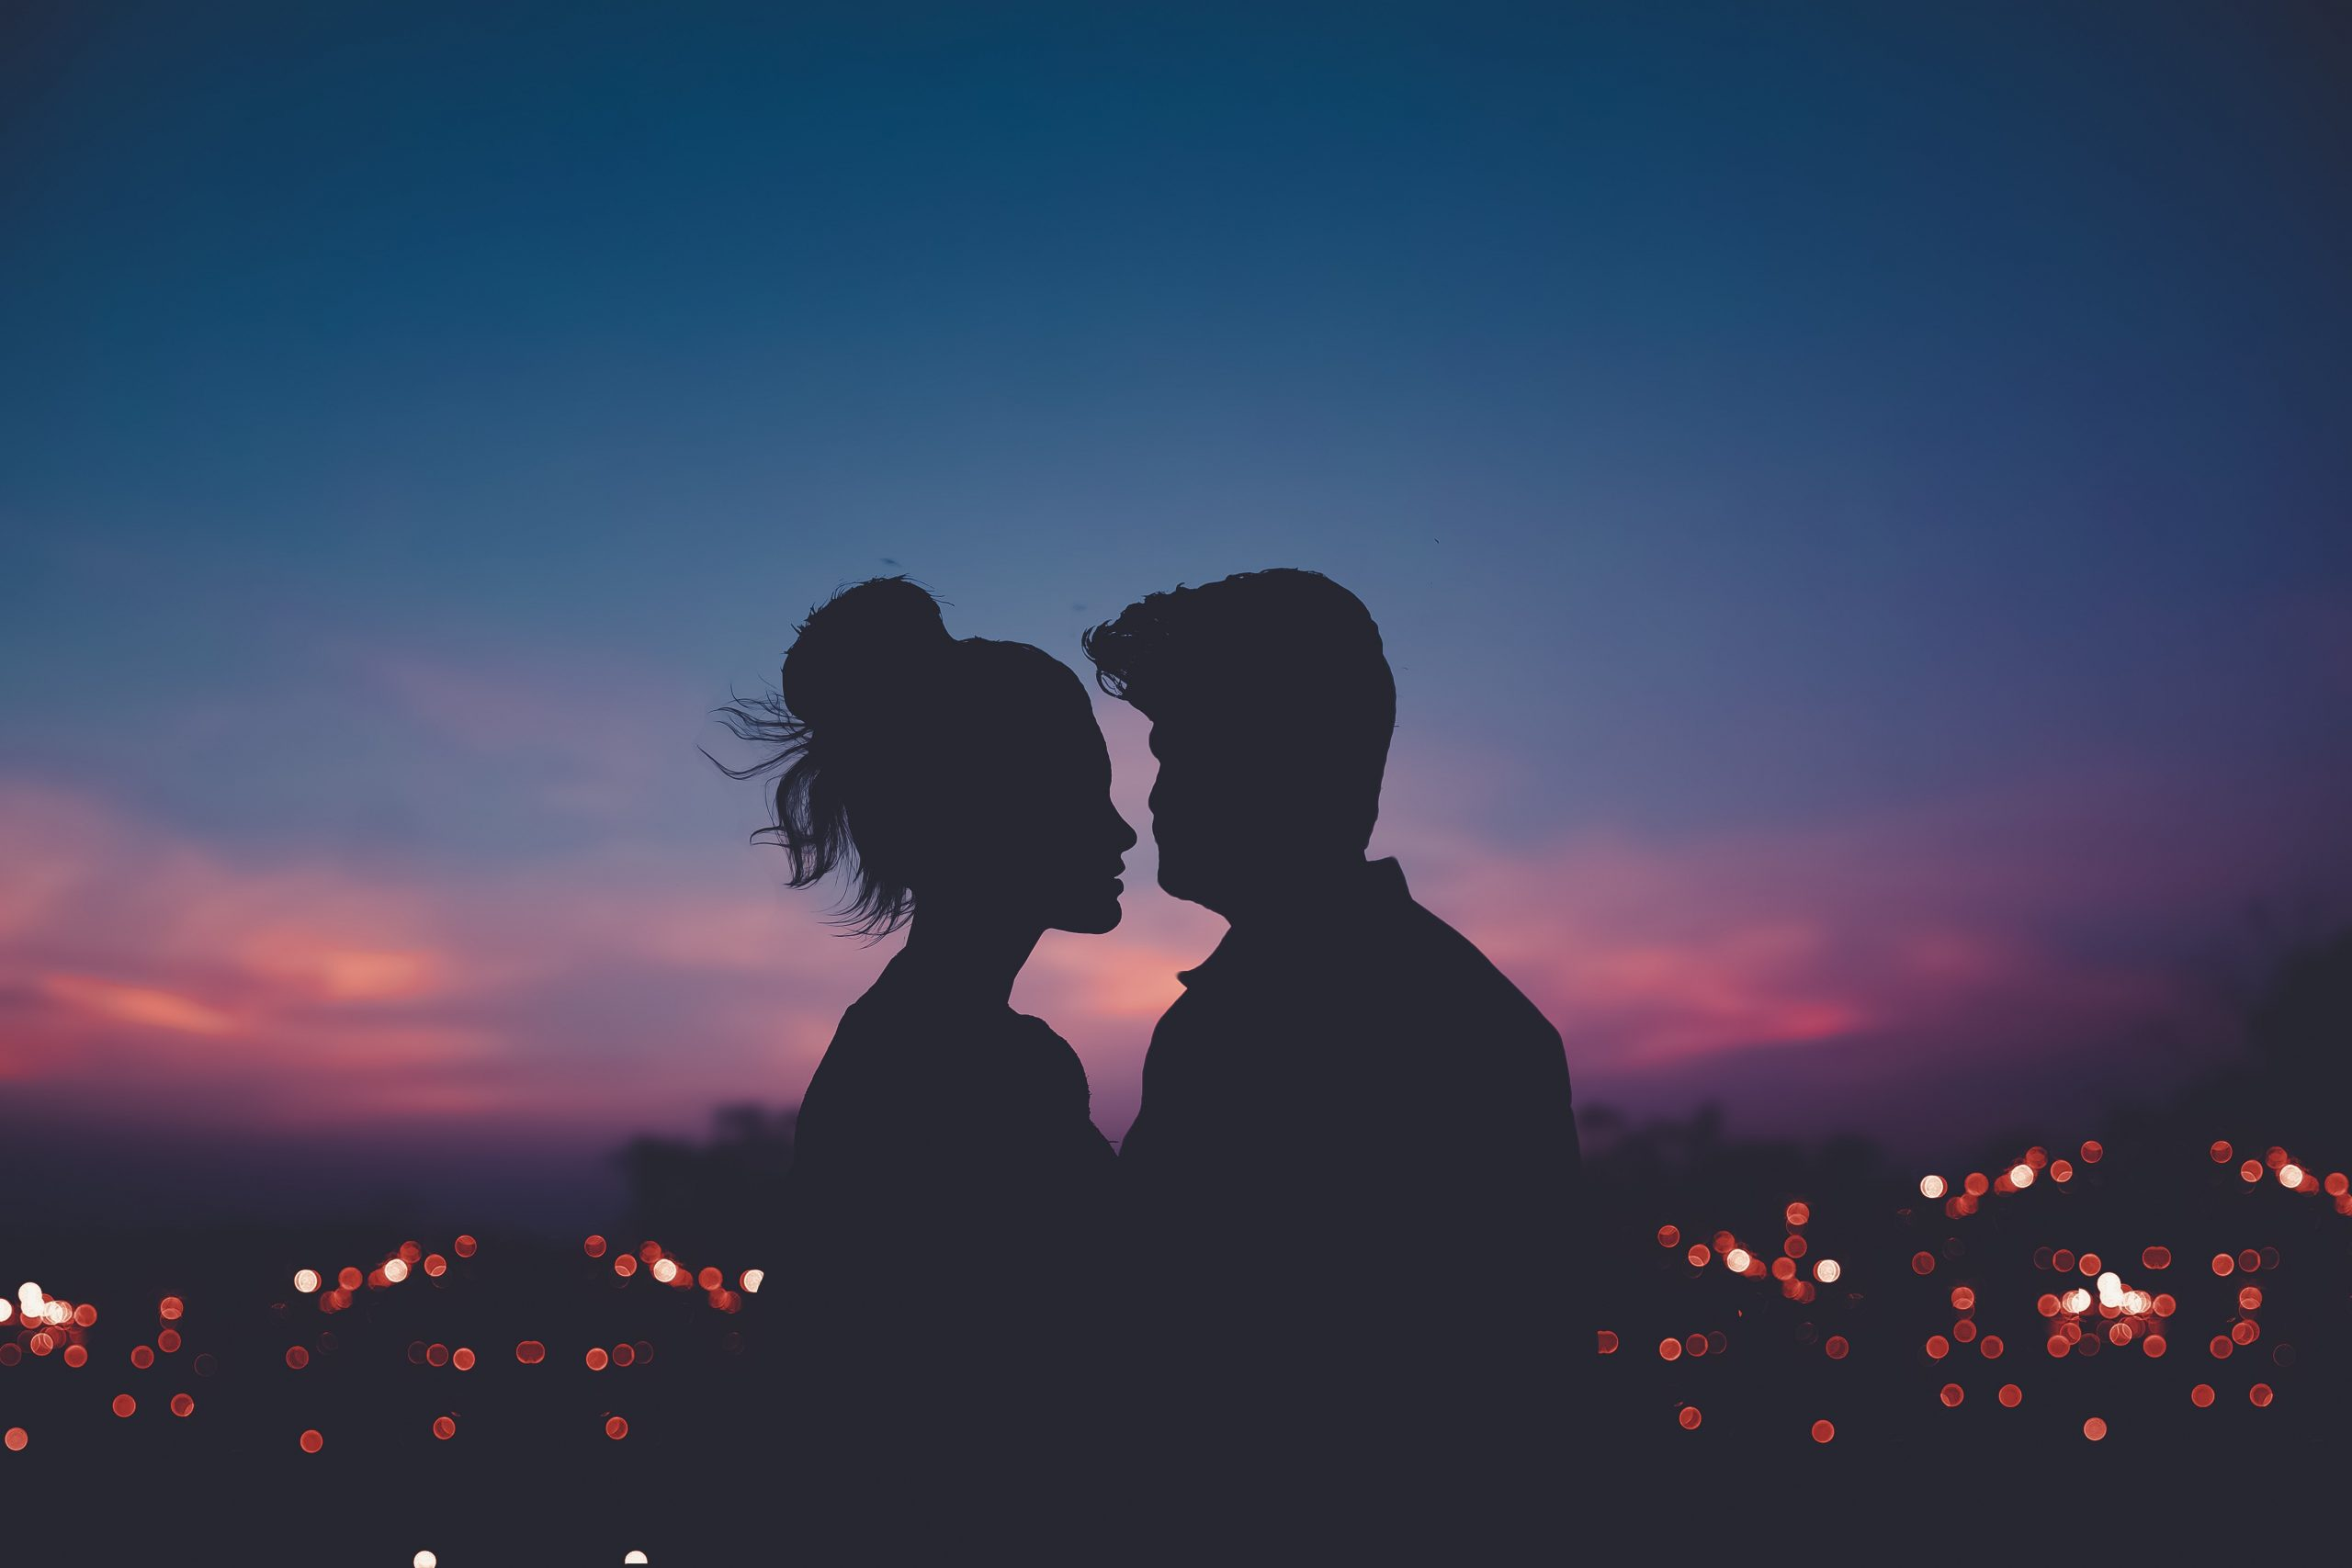 silhouette of a couple against the evening sky